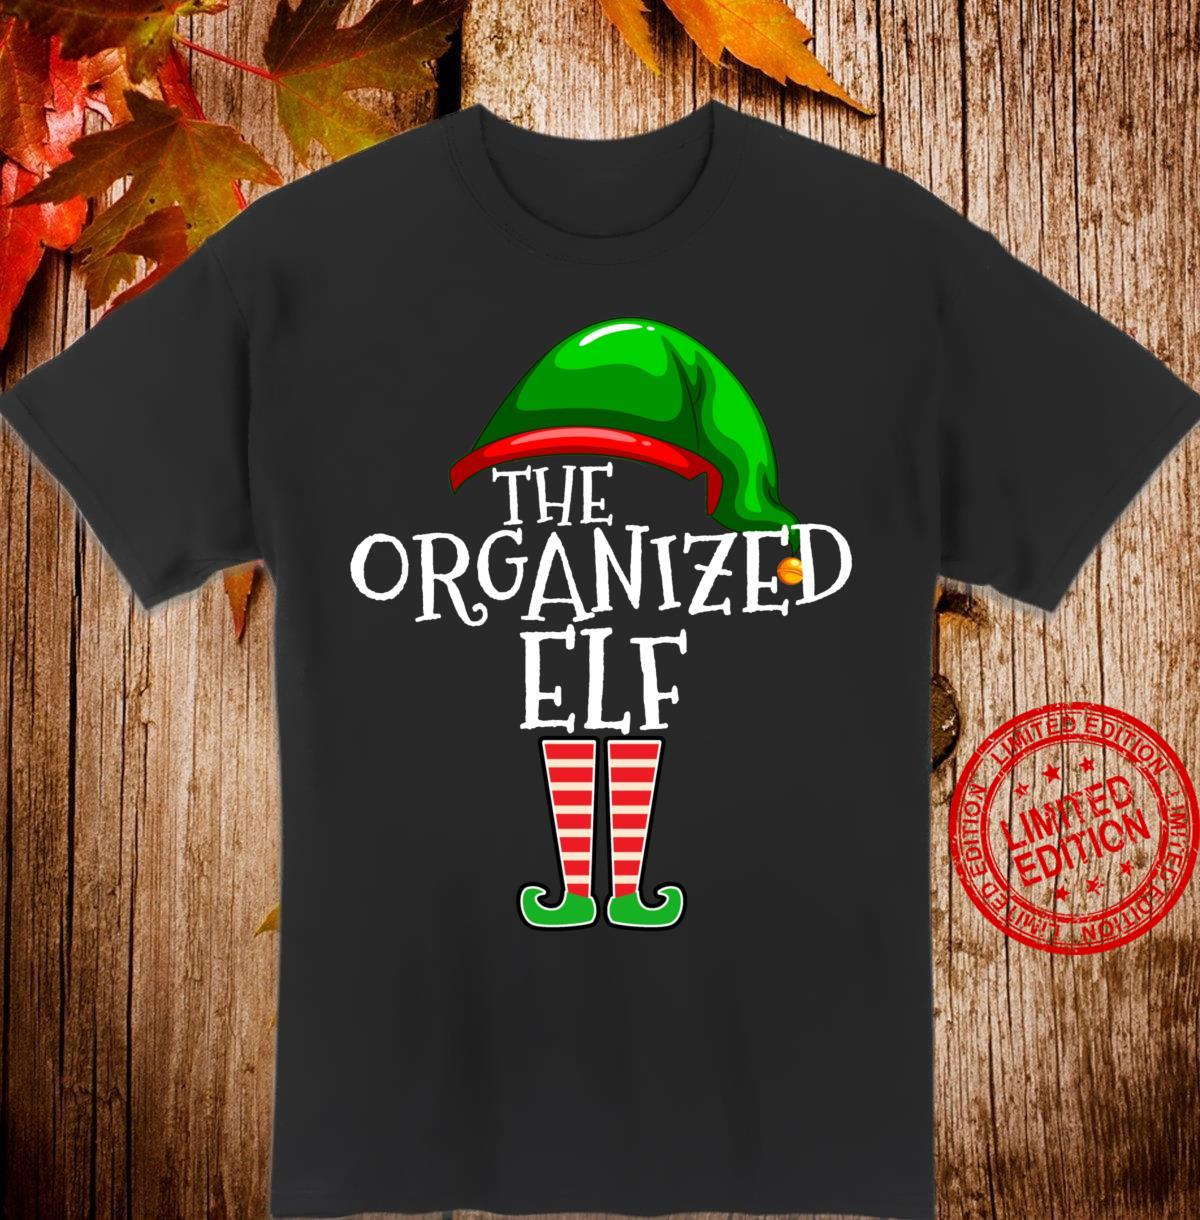 Organized Elf Group Matching Family Christmas Outfit Shirt